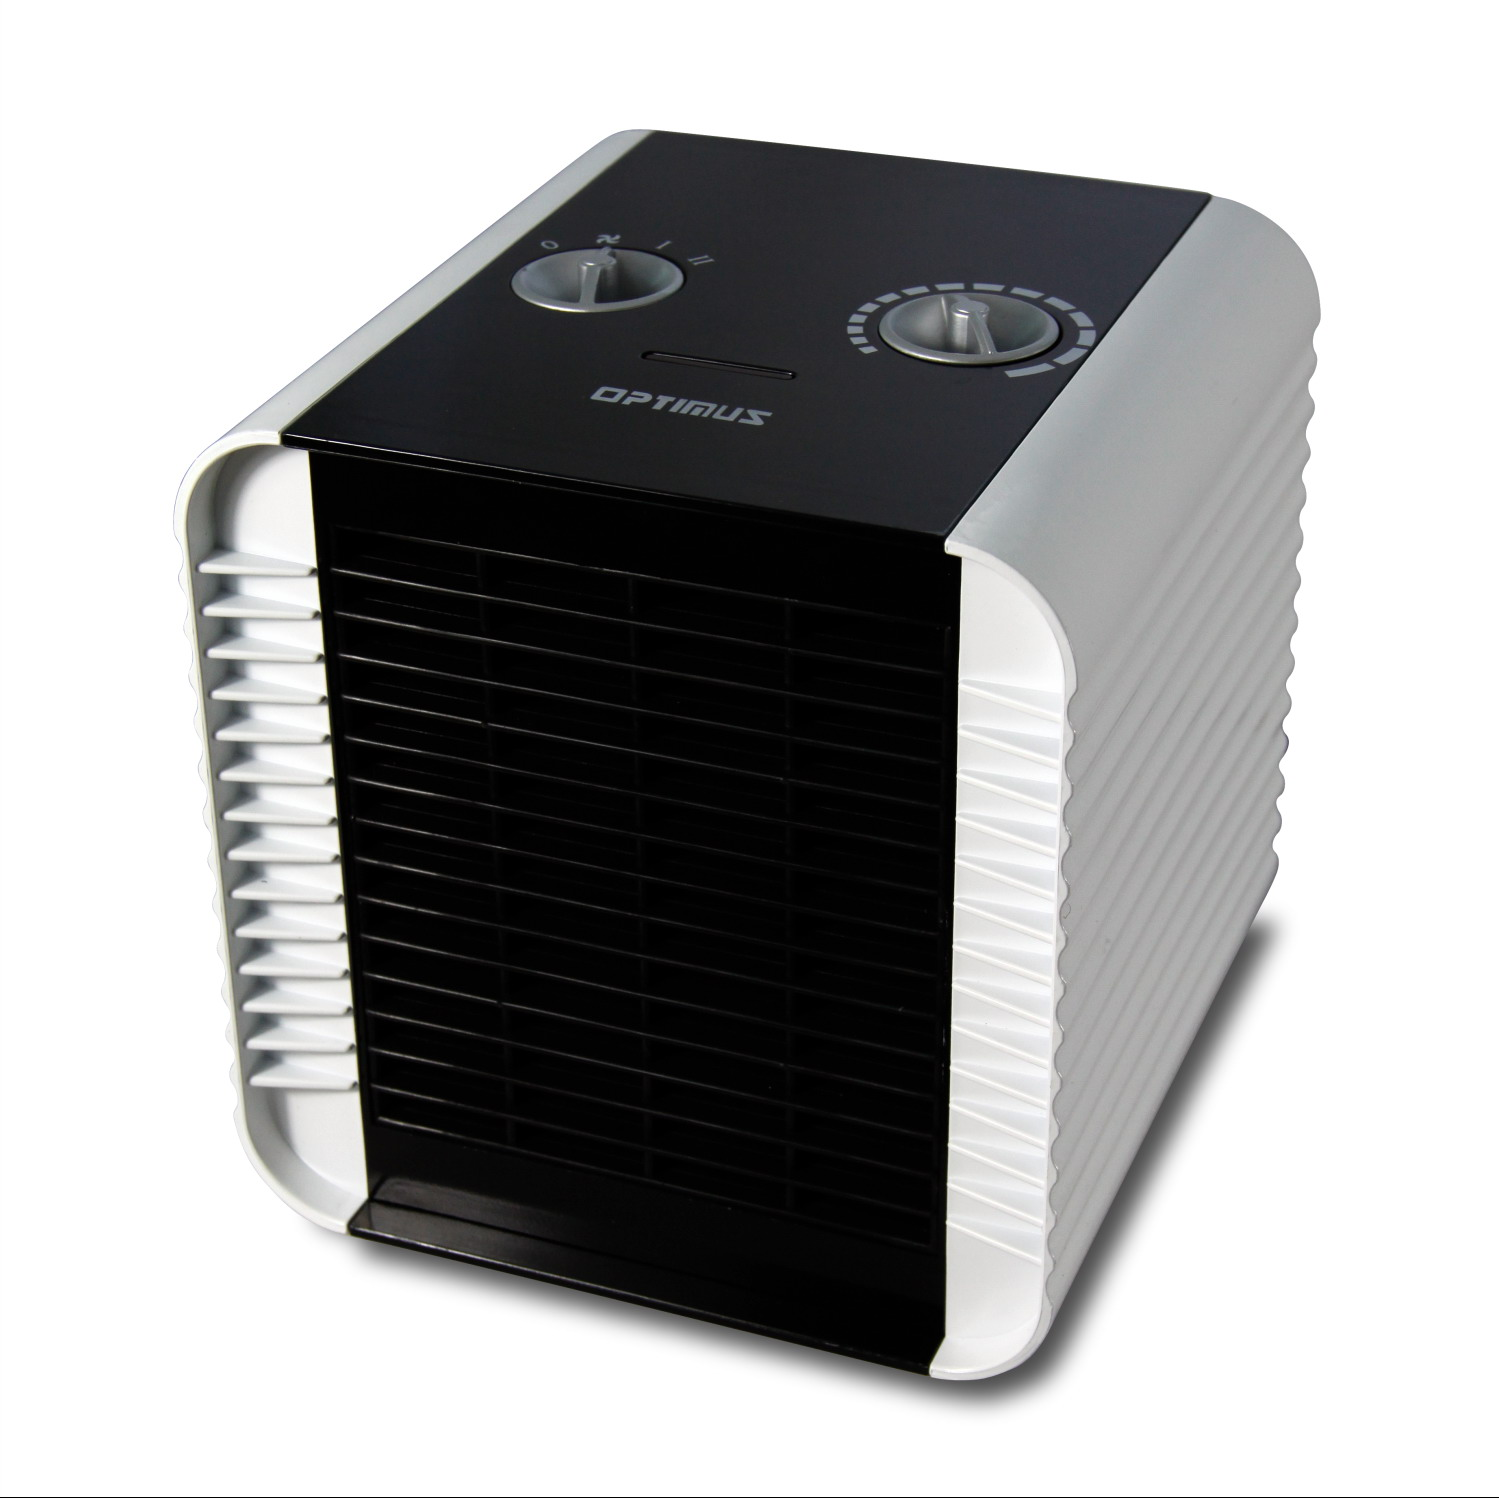 OPTIMUS H7003 HEATER CERAMIC WITH THERMOSTAT PORTABLE